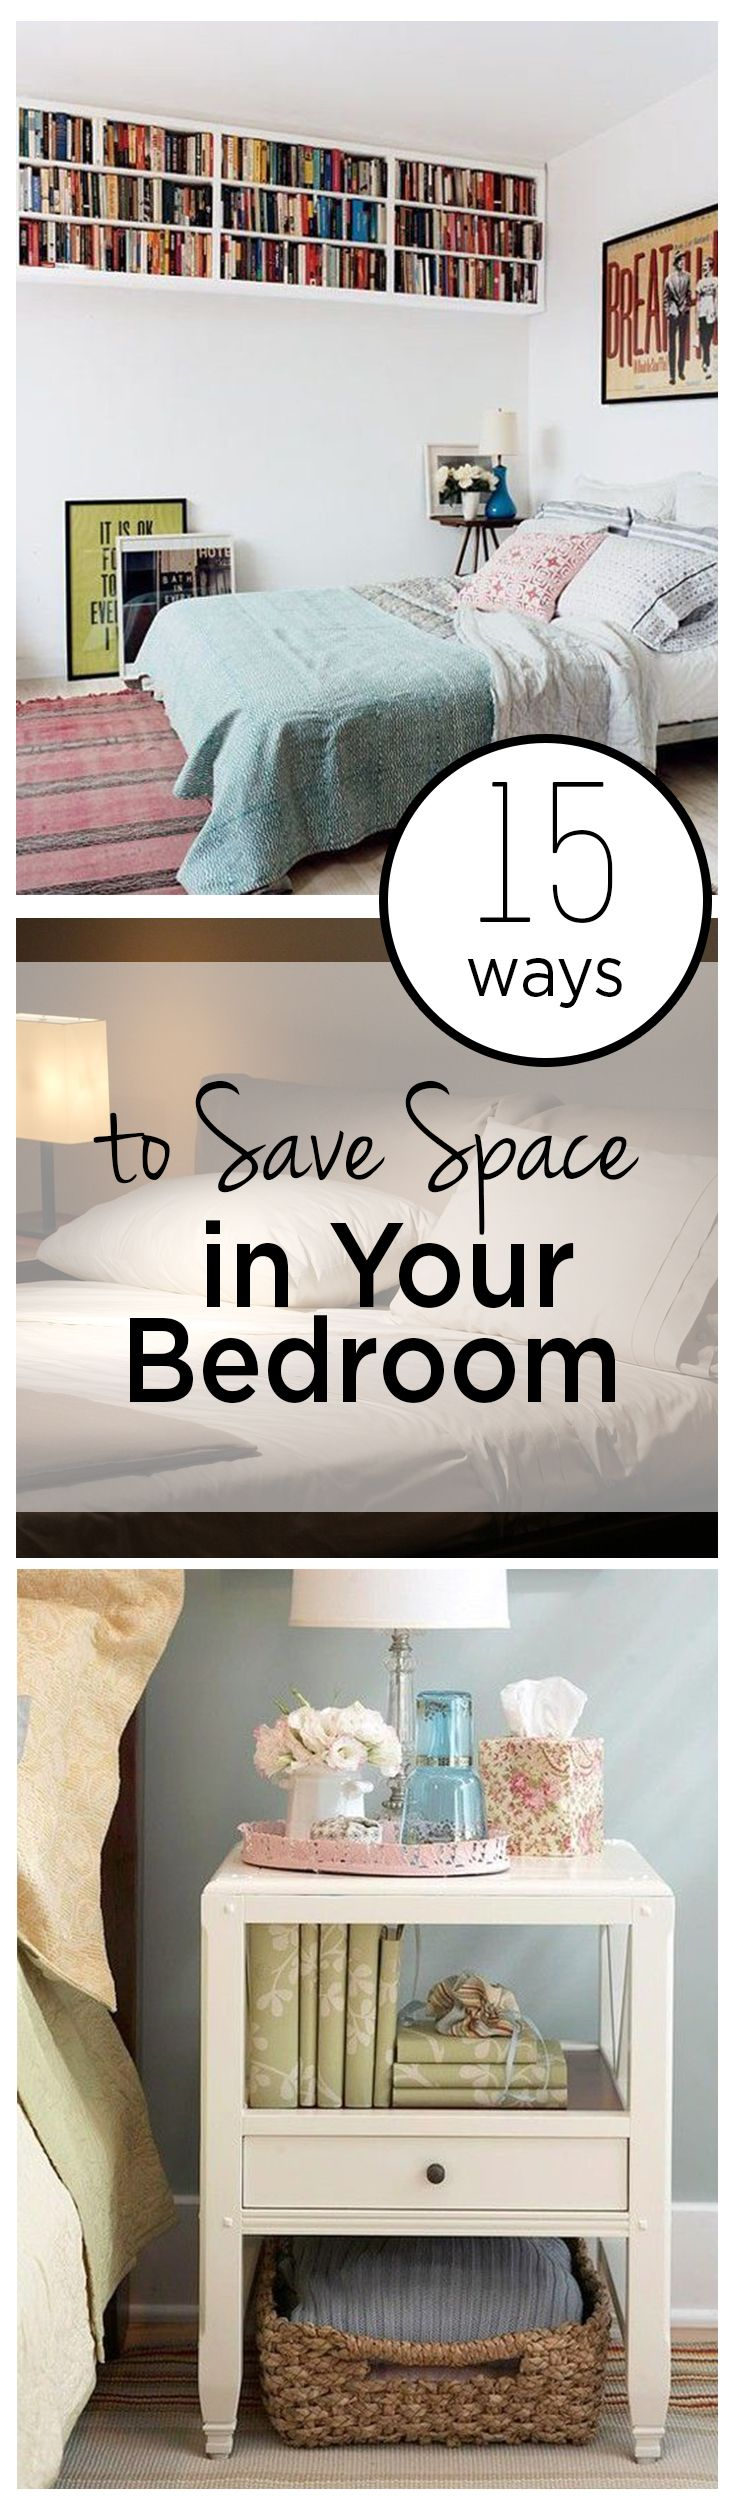 Diy bedroom decor ideas pinterest - 15 Ways To Save Space In Your Bedroom Diy Bedroom Decorbedroom